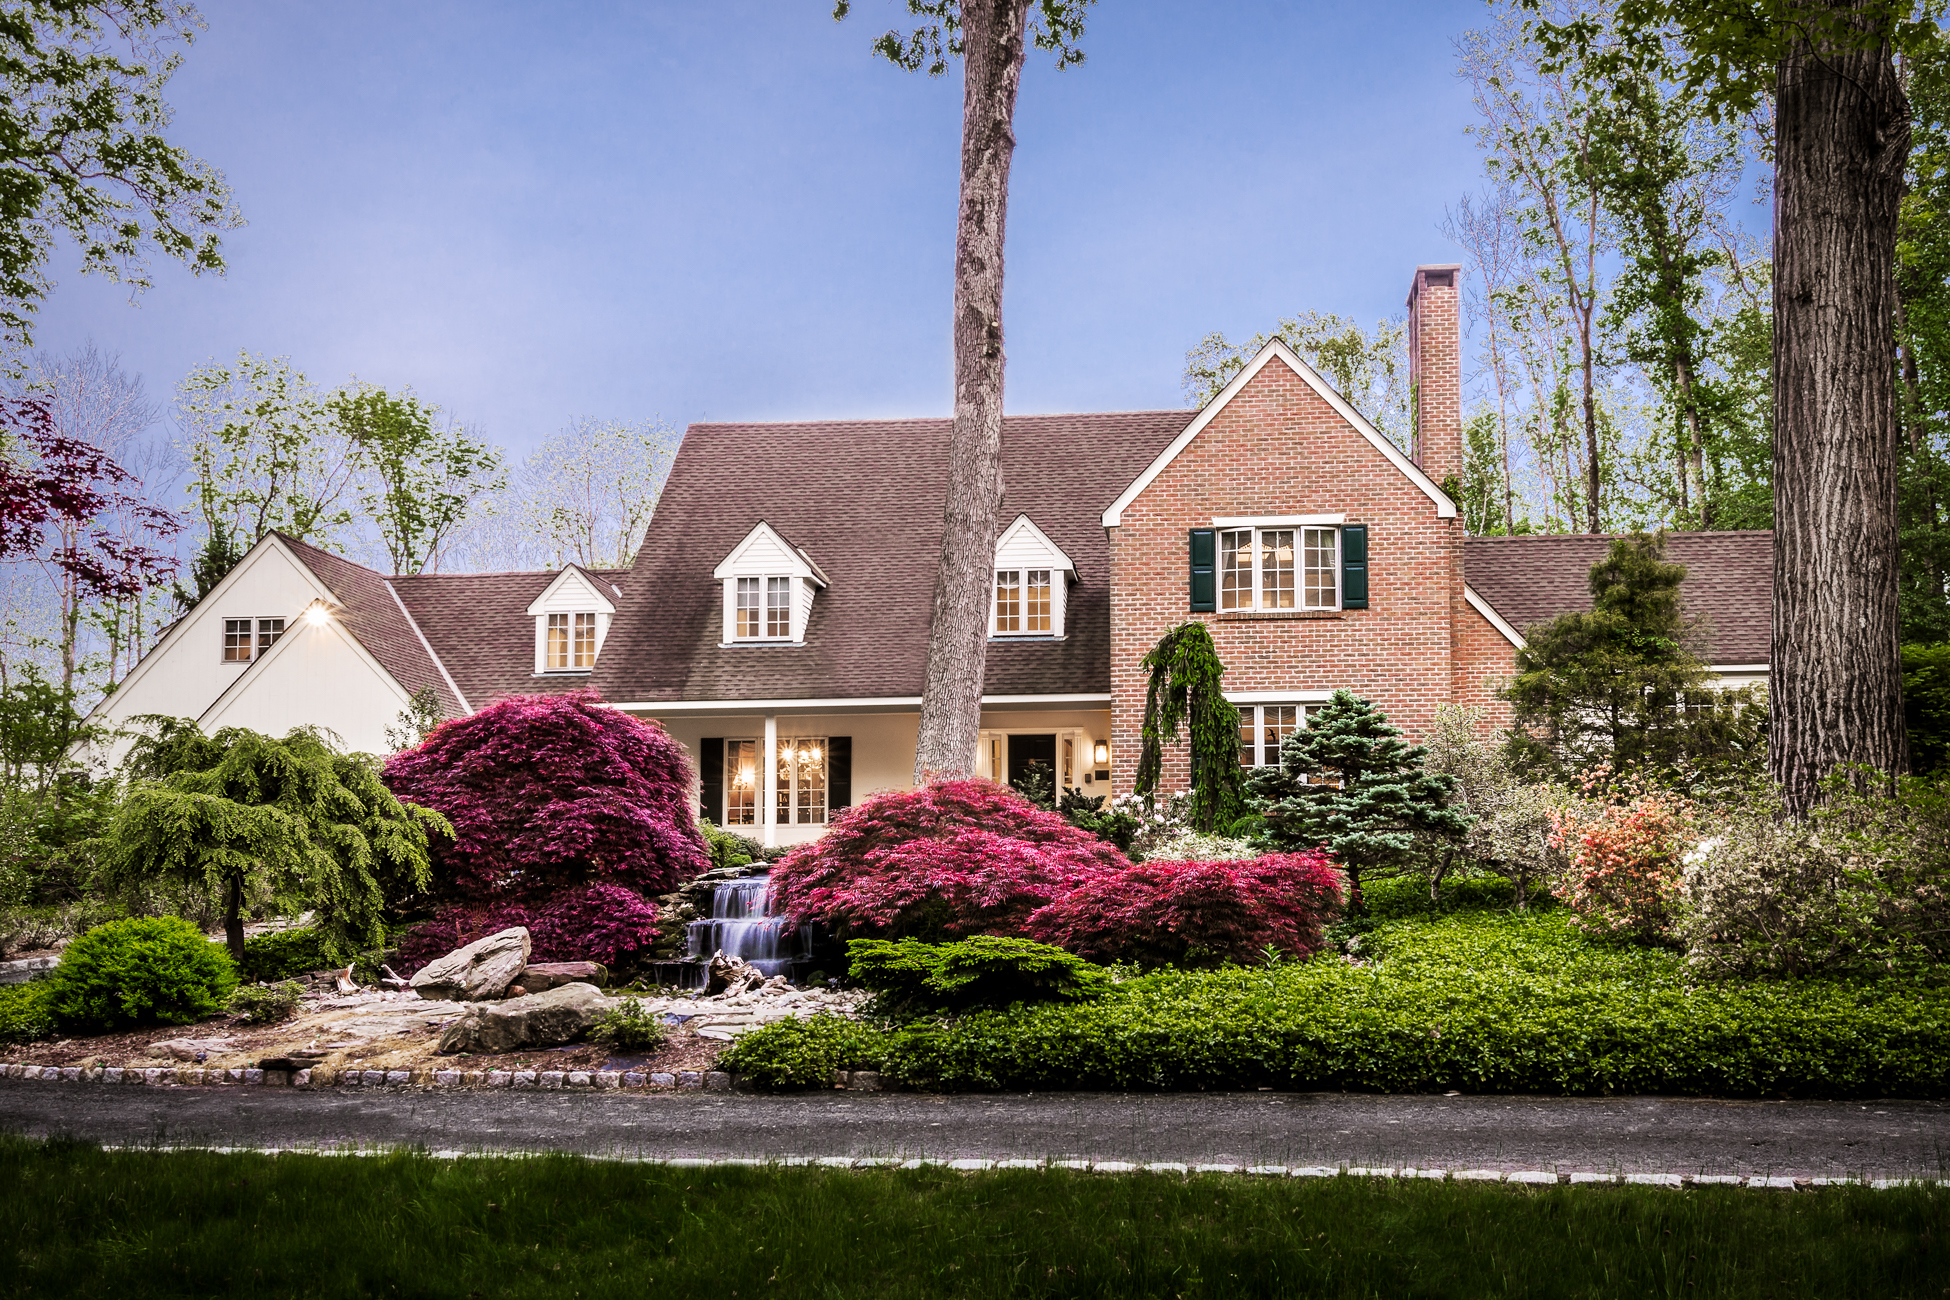 Single Family Home for Sale at A Majestic Setting for Distinctive Lawrence Estate - Lawrence Township 4497 Province Line Road Princeton, New Jersey, 08540 United States